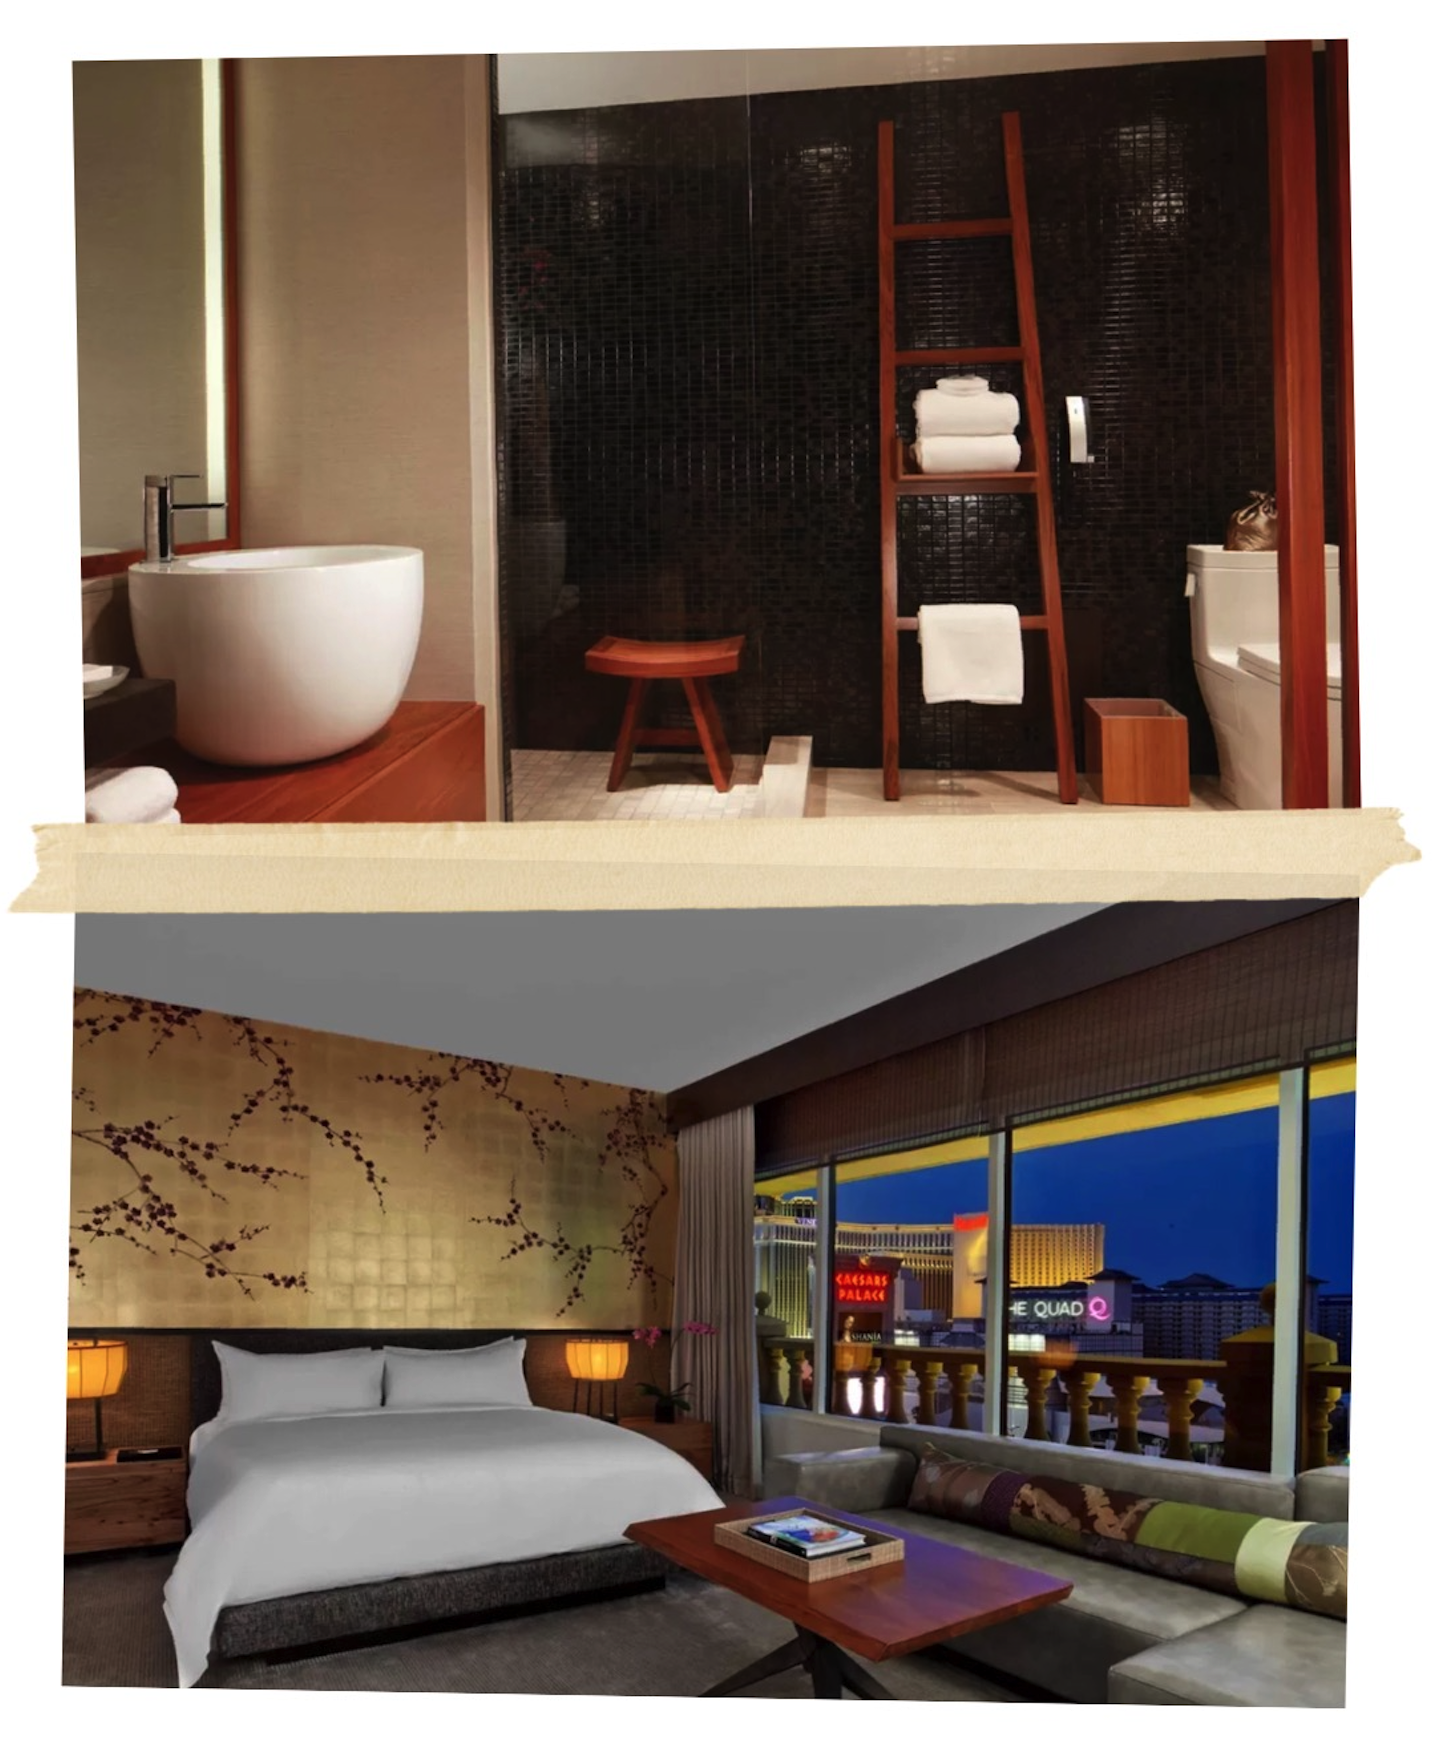 places to stay in las vegas - best las vegas hotels - list of las vegas hotels - best area to stay in las vegas - list of las vegas hotels - best places to stay in vegas on the strip - where to stay in vegas first time - which vegas hotel should i stay at -  nobu - caesars palace